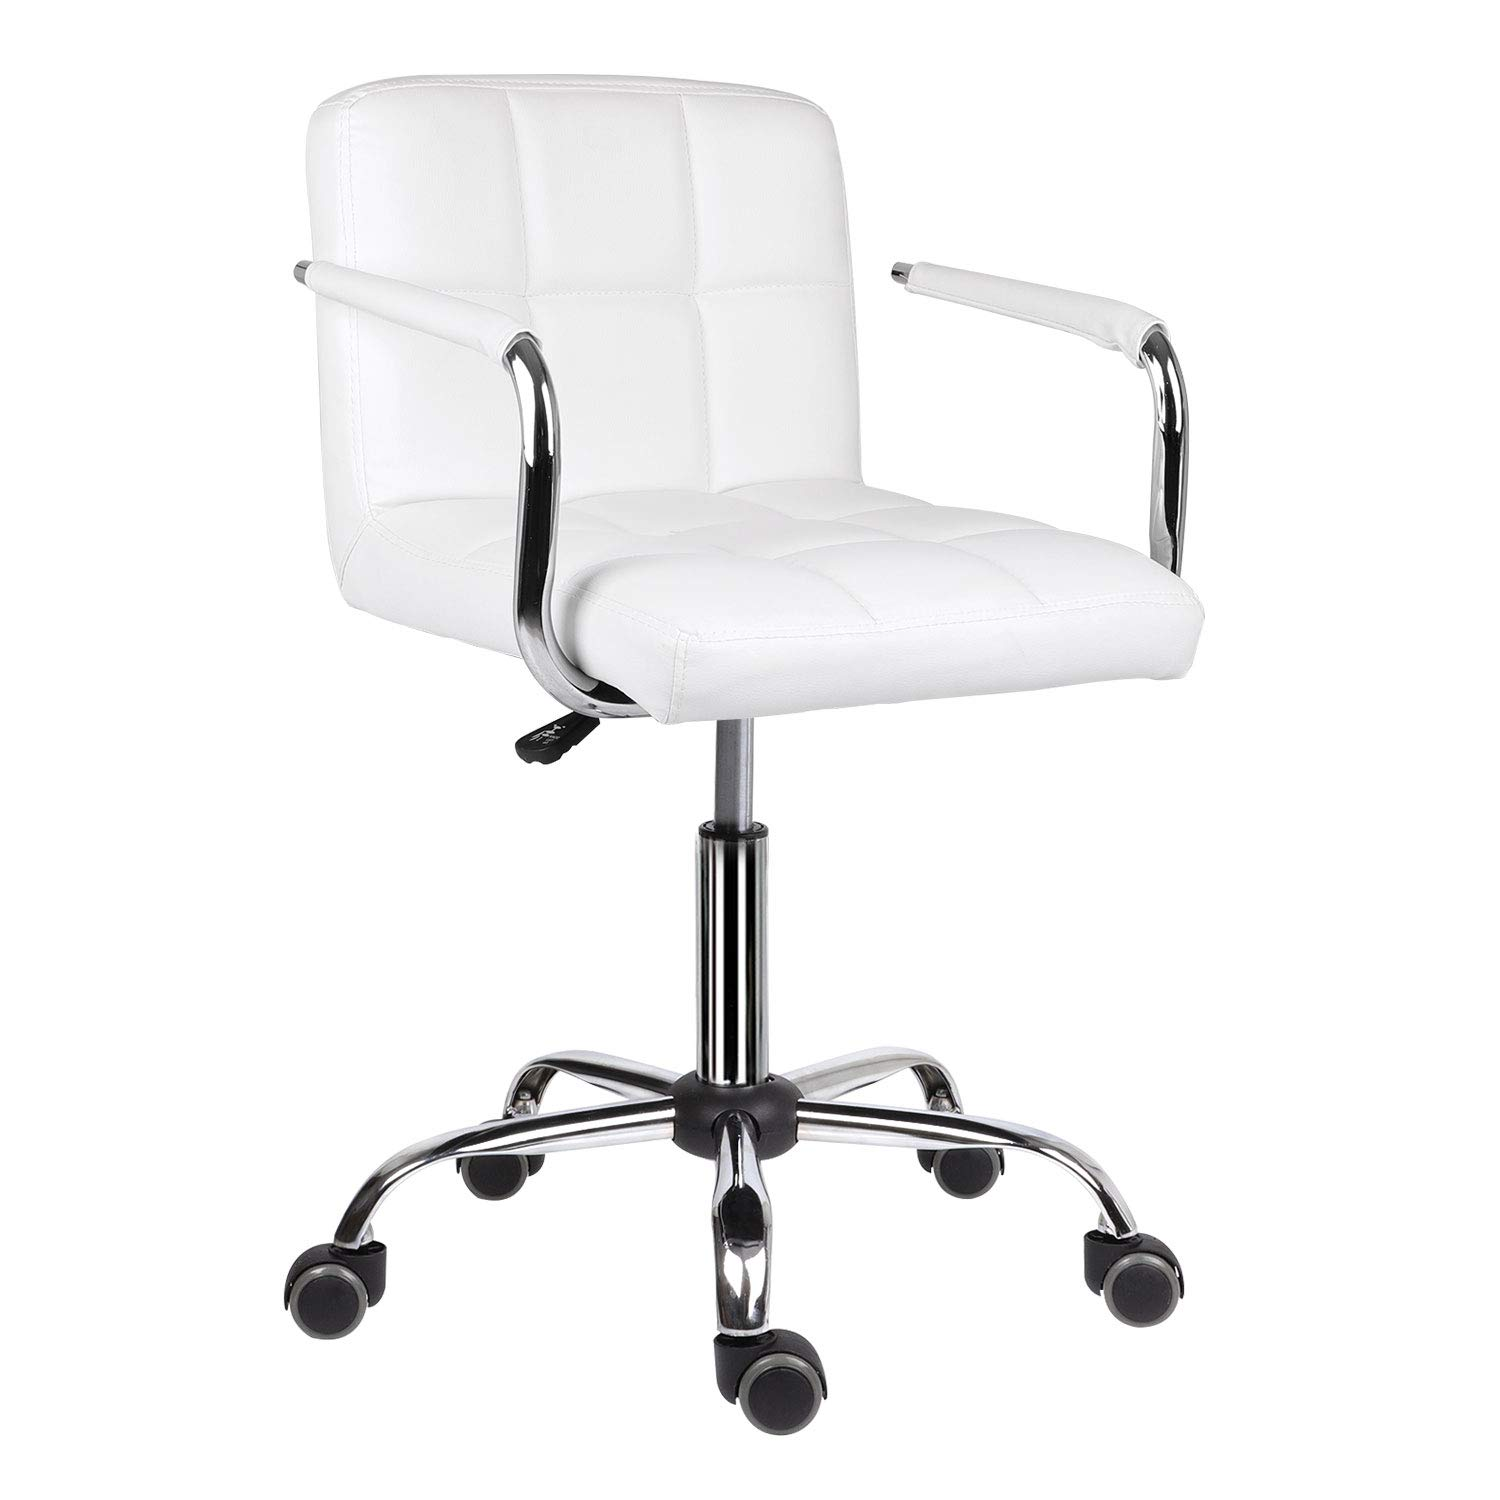 Desk Chair Leather Home Office Chair Com Buy Online In Hong Kong At Desertcart